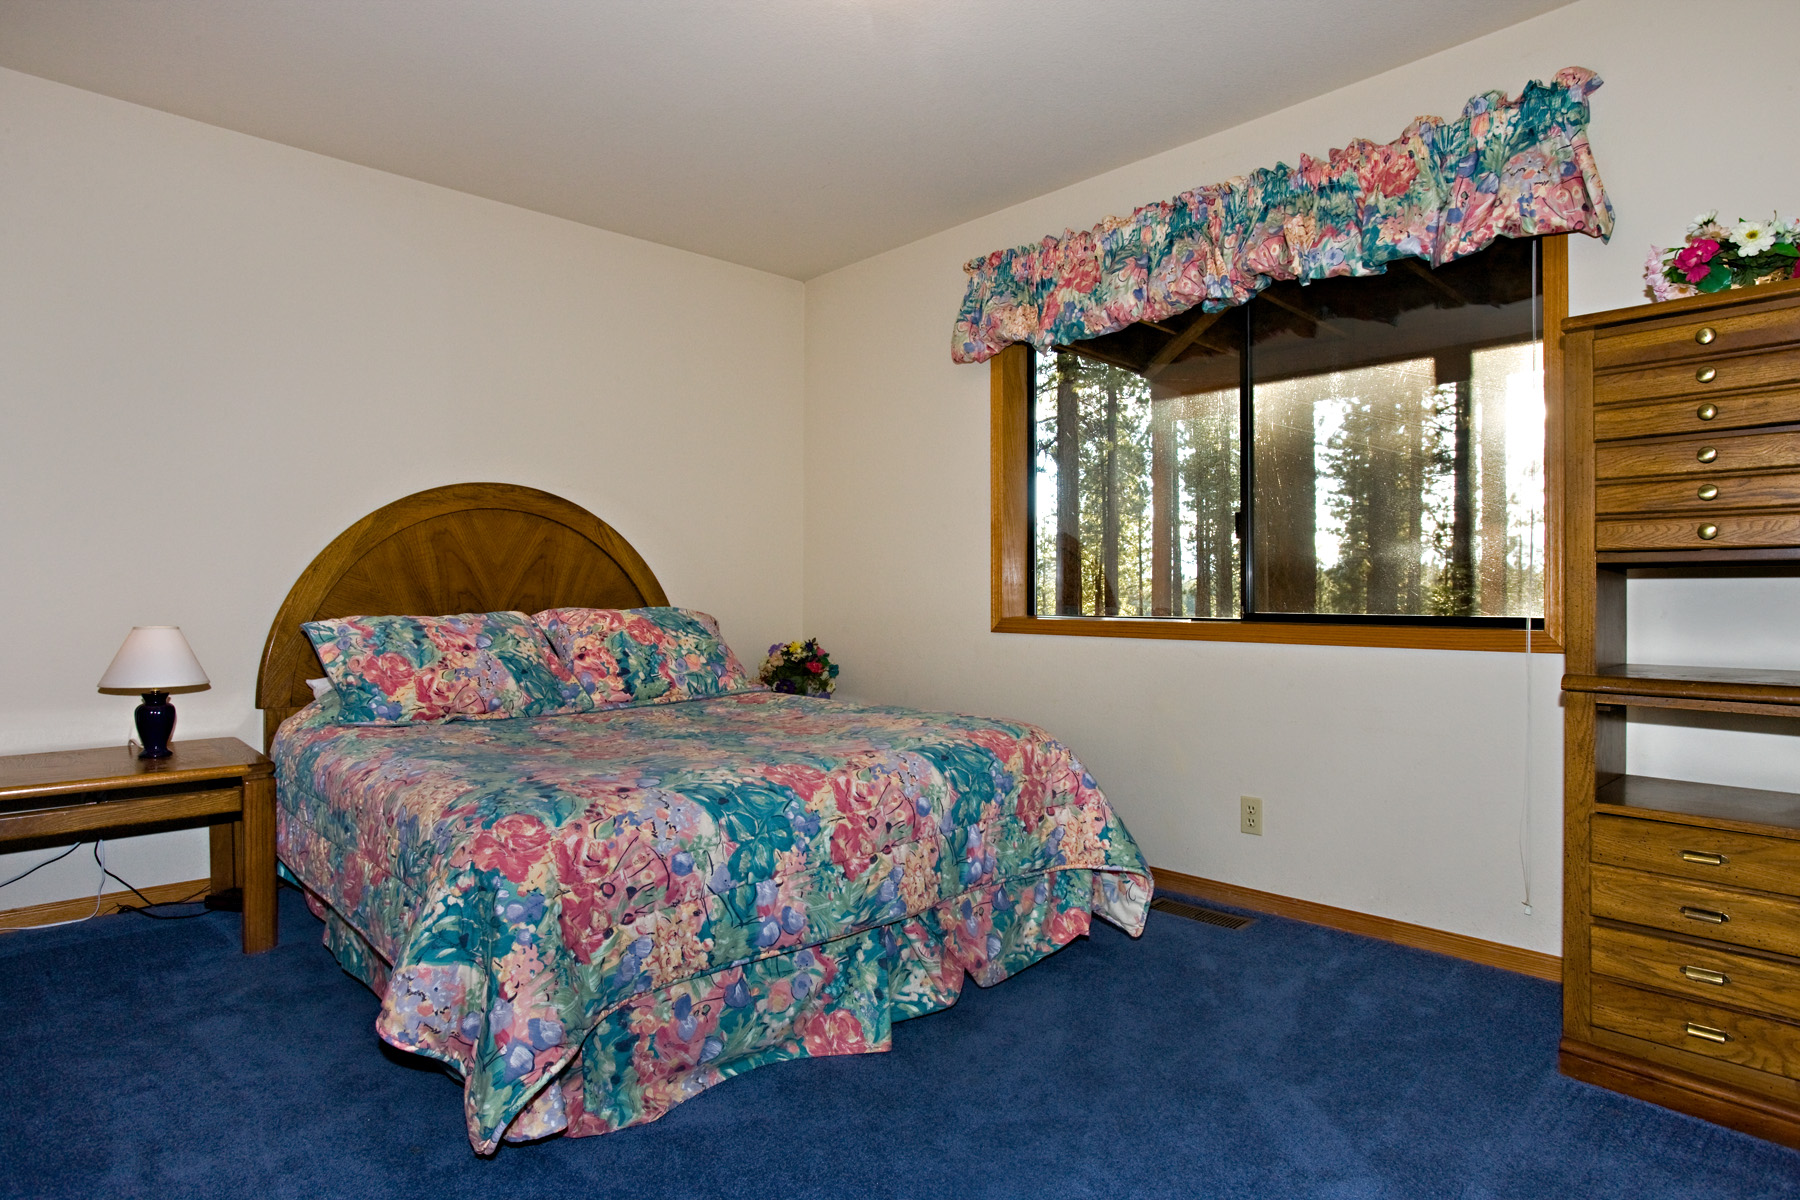 The third bedroom has a queen bed and a view